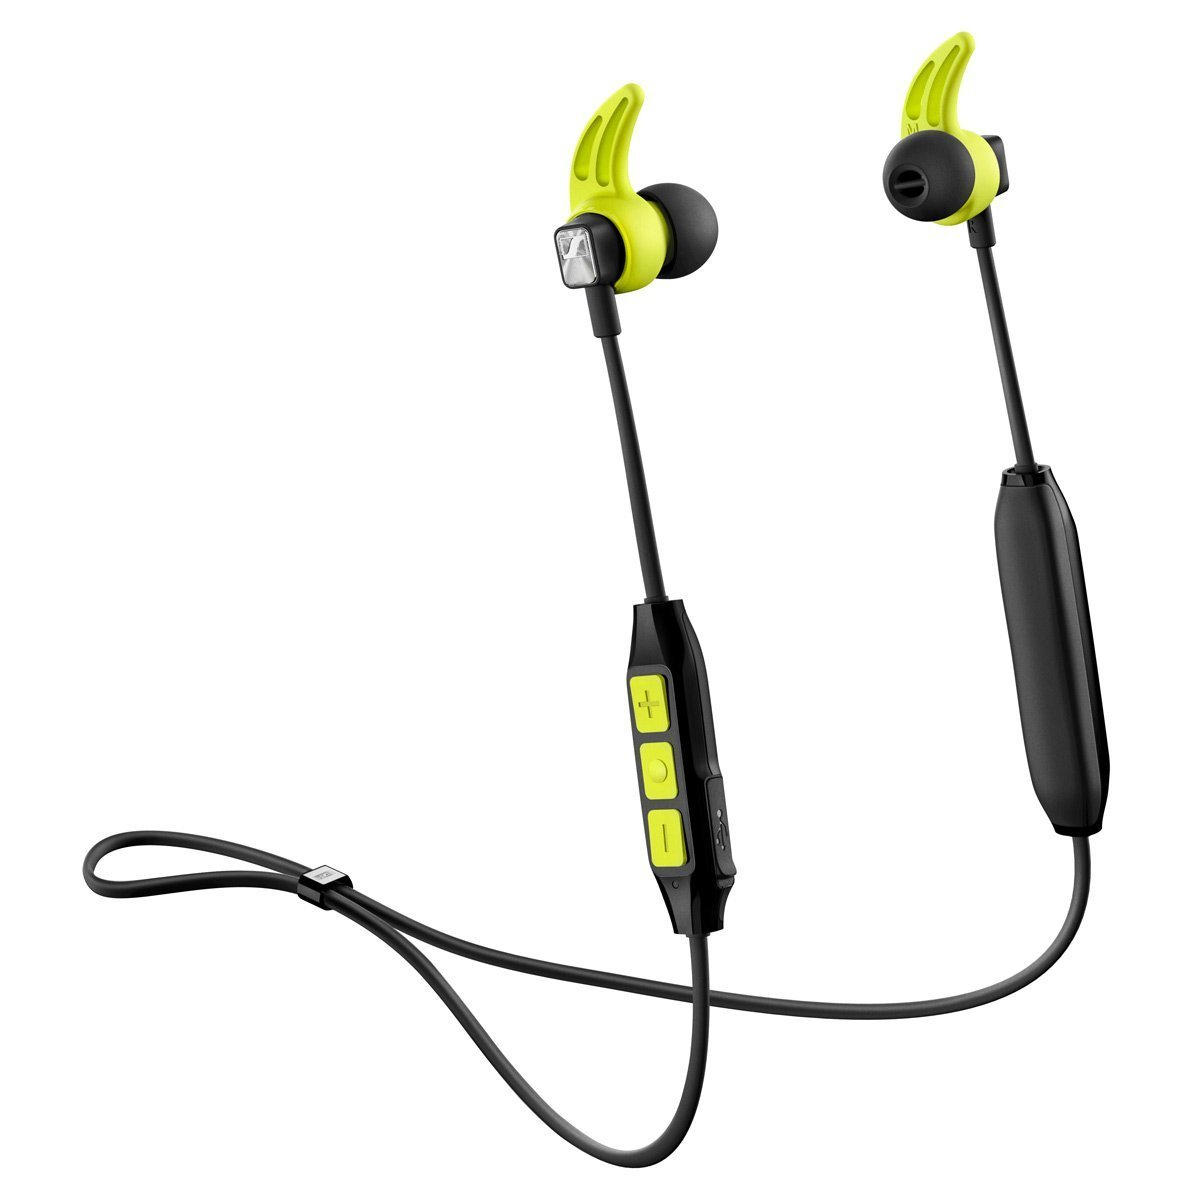 Sennheiser CX SPORT In-Ear Wireless Sport Headphones image